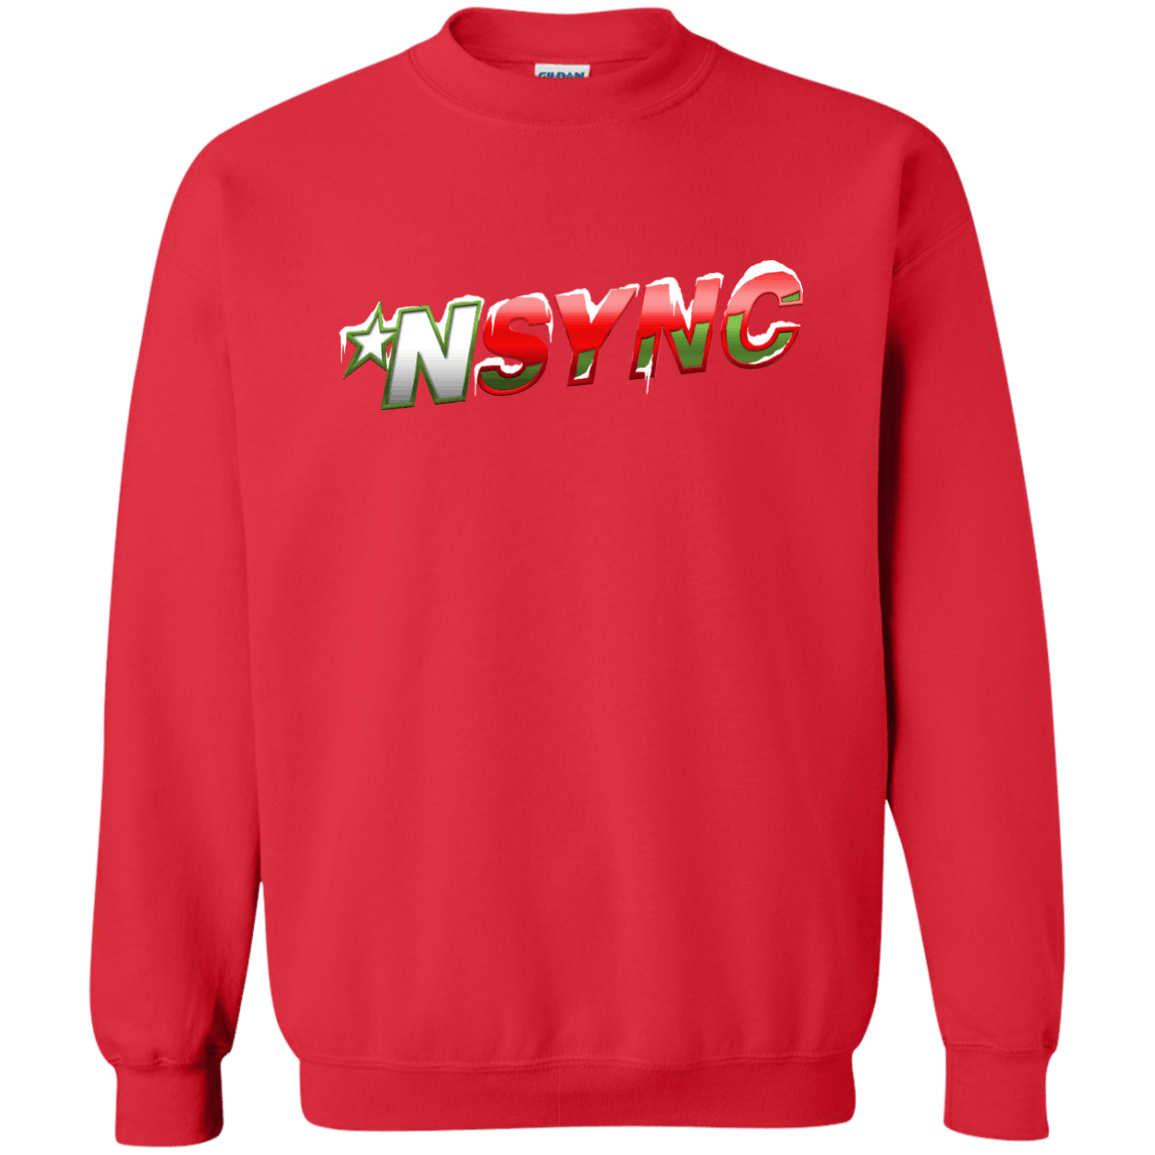 Whats In The Nsync Holiday Clothing Collection It Totally Sleighs